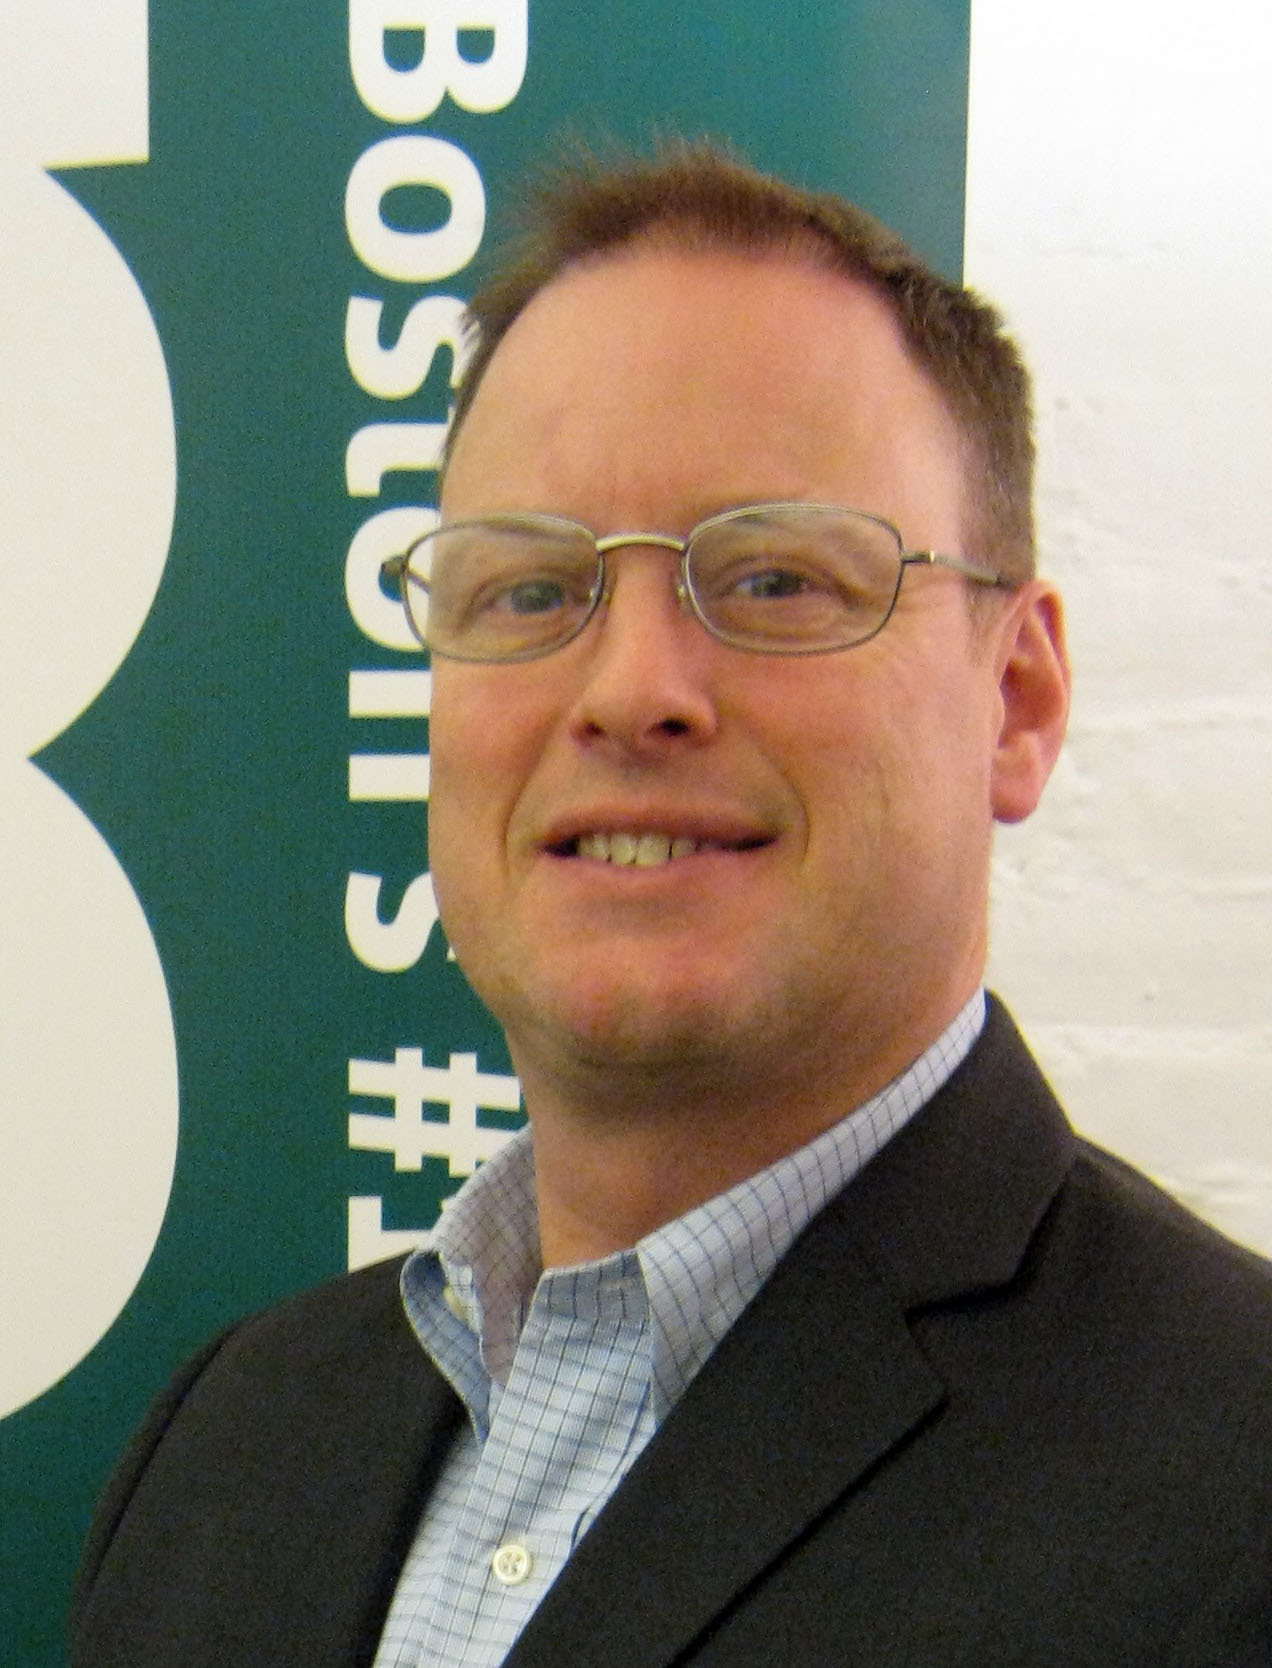 Advertising Industry Veteran Steve Corcoran is the new Advertising Director of Metro Boston. (Photo: Business Wire)